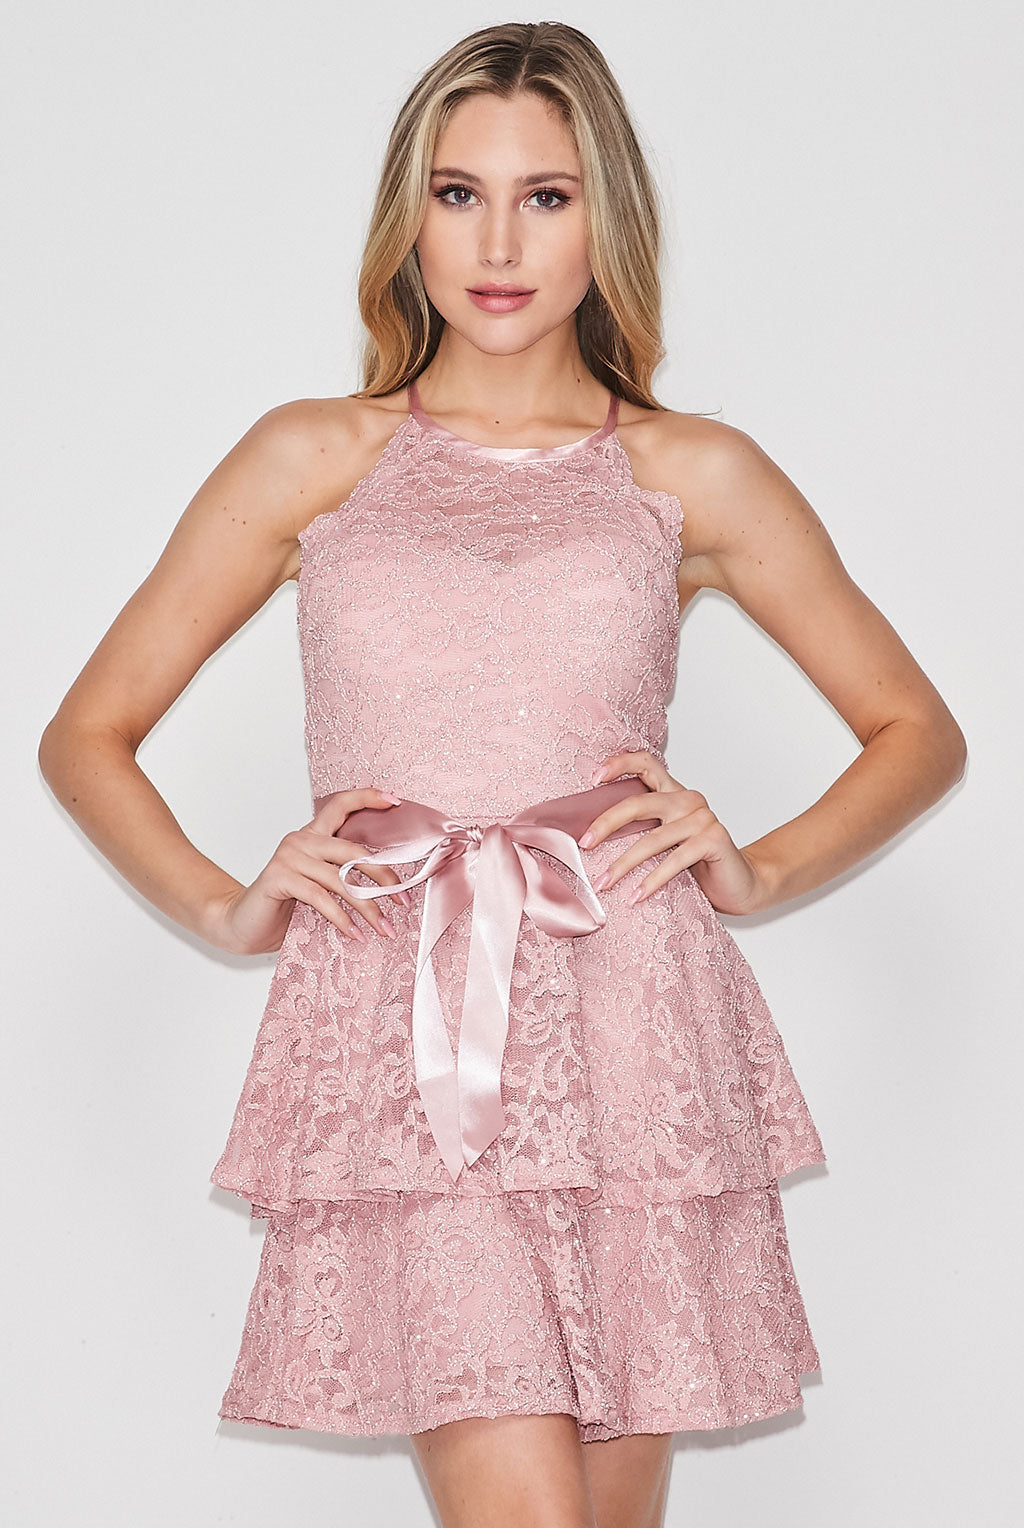 Teeze Me | Halter Top Glitter Lace Two-Tier Short Dress | Blush